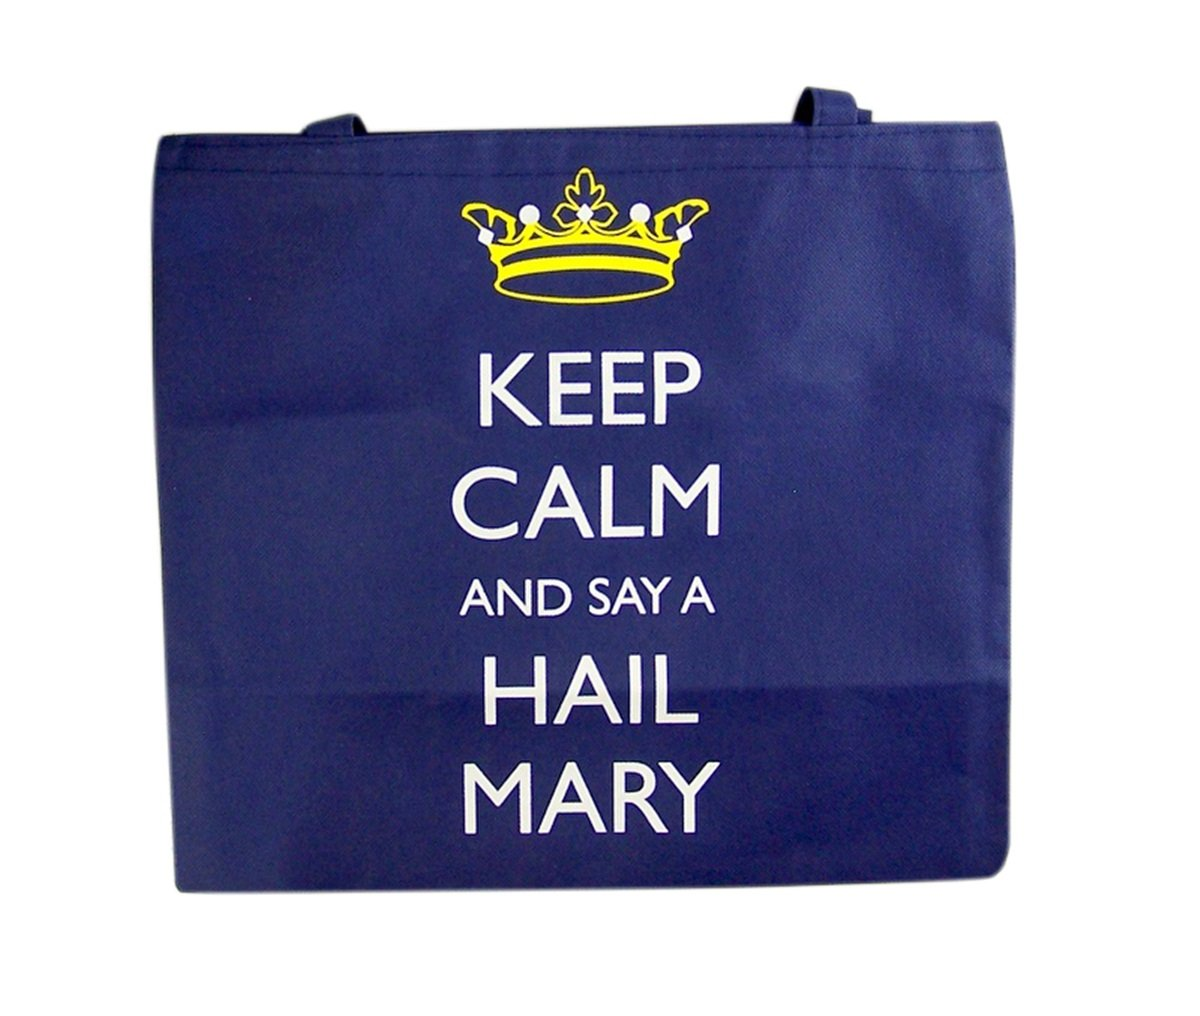 Keep Calm And Say a Hail Mary, Recycled Nylon Tote Bag, 14 1/2 Inch